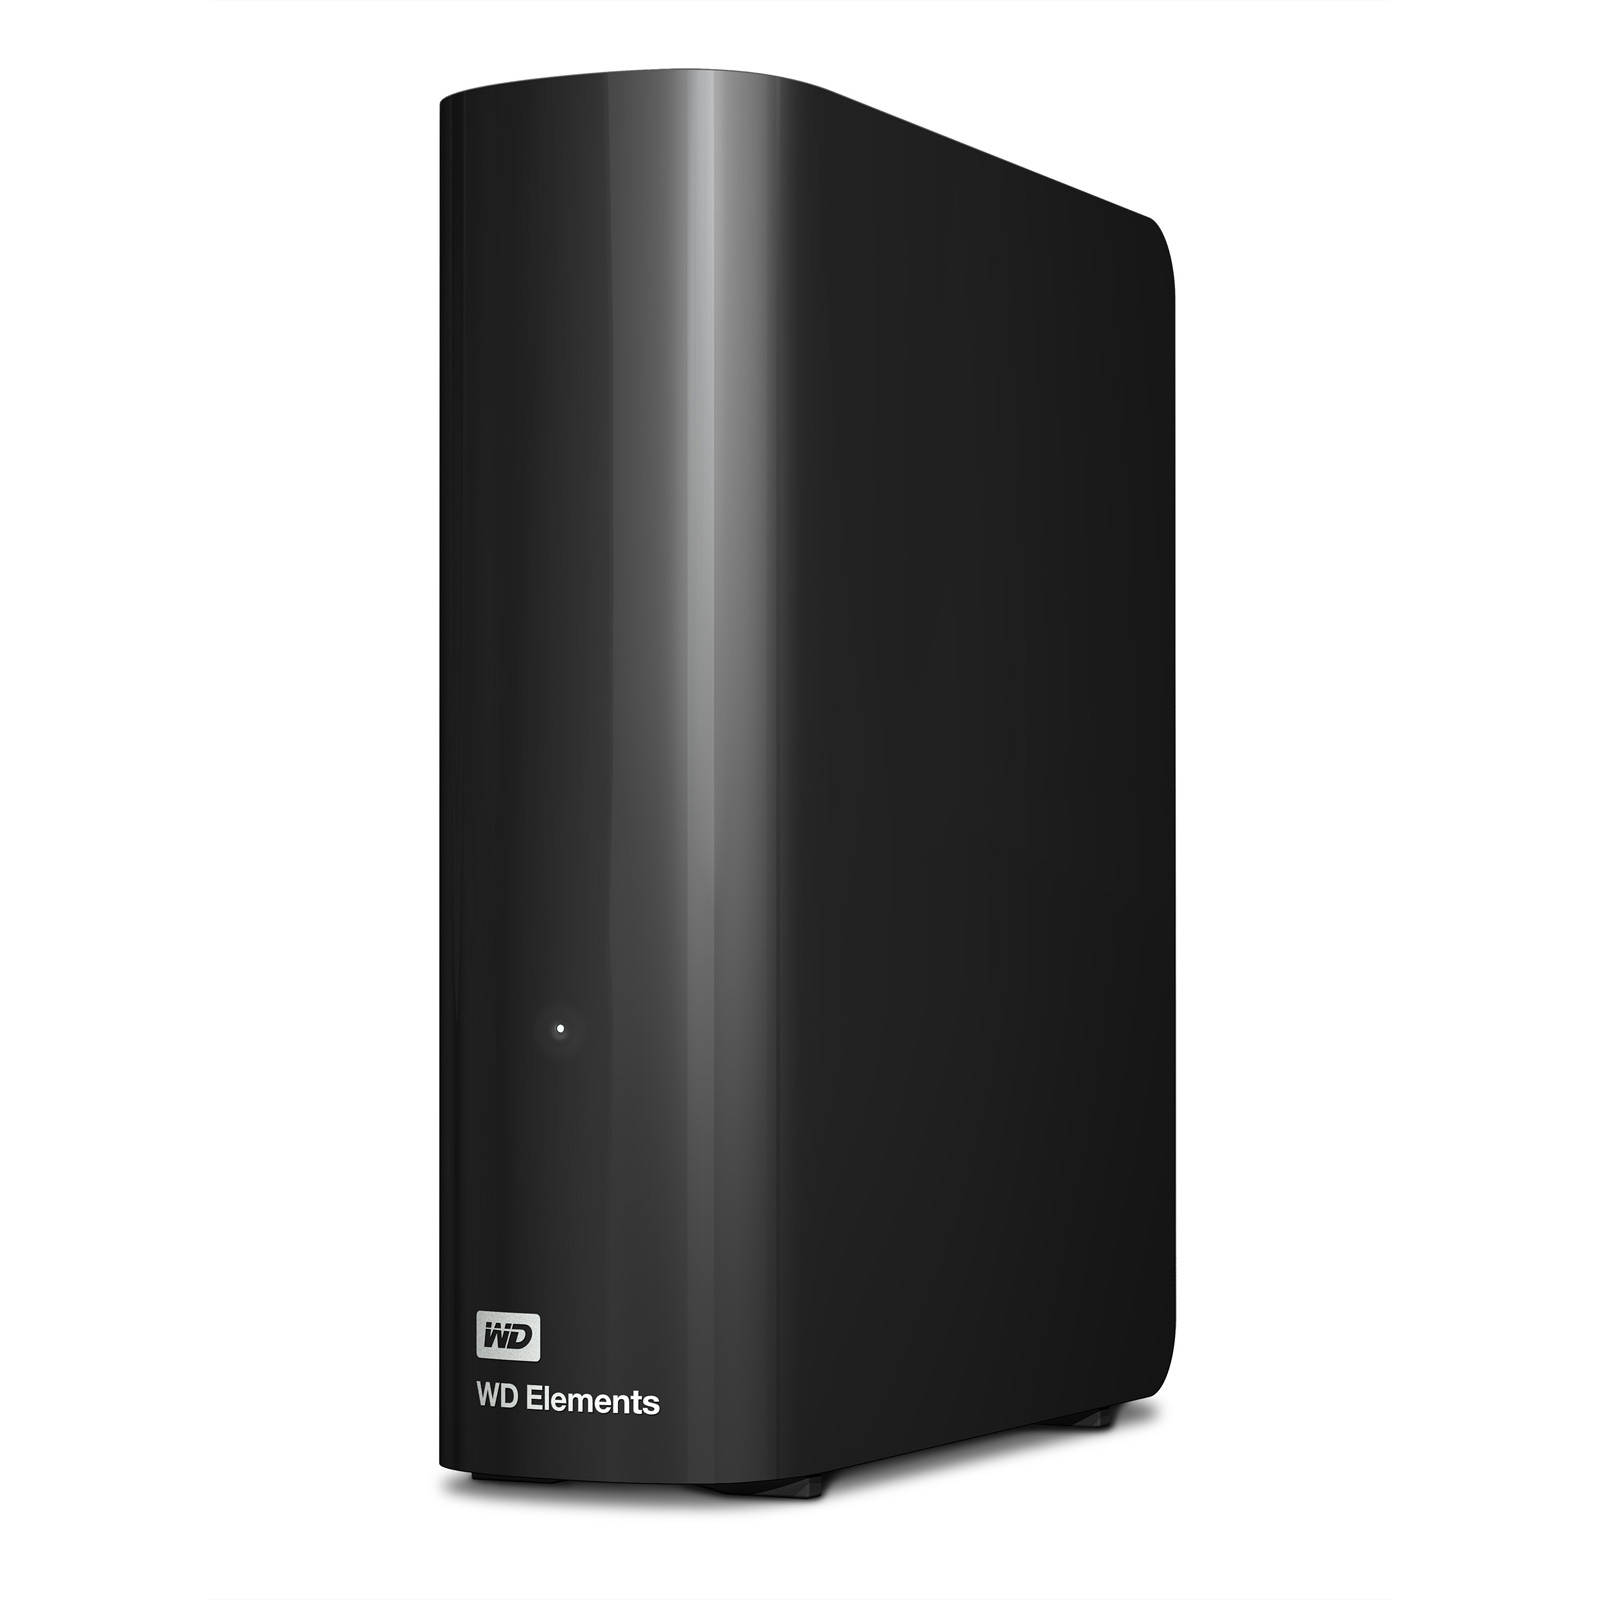 wd elements desktop 2 to usb 3 0 disque dur externe. Black Bedroom Furniture Sets. Home Design Ideas